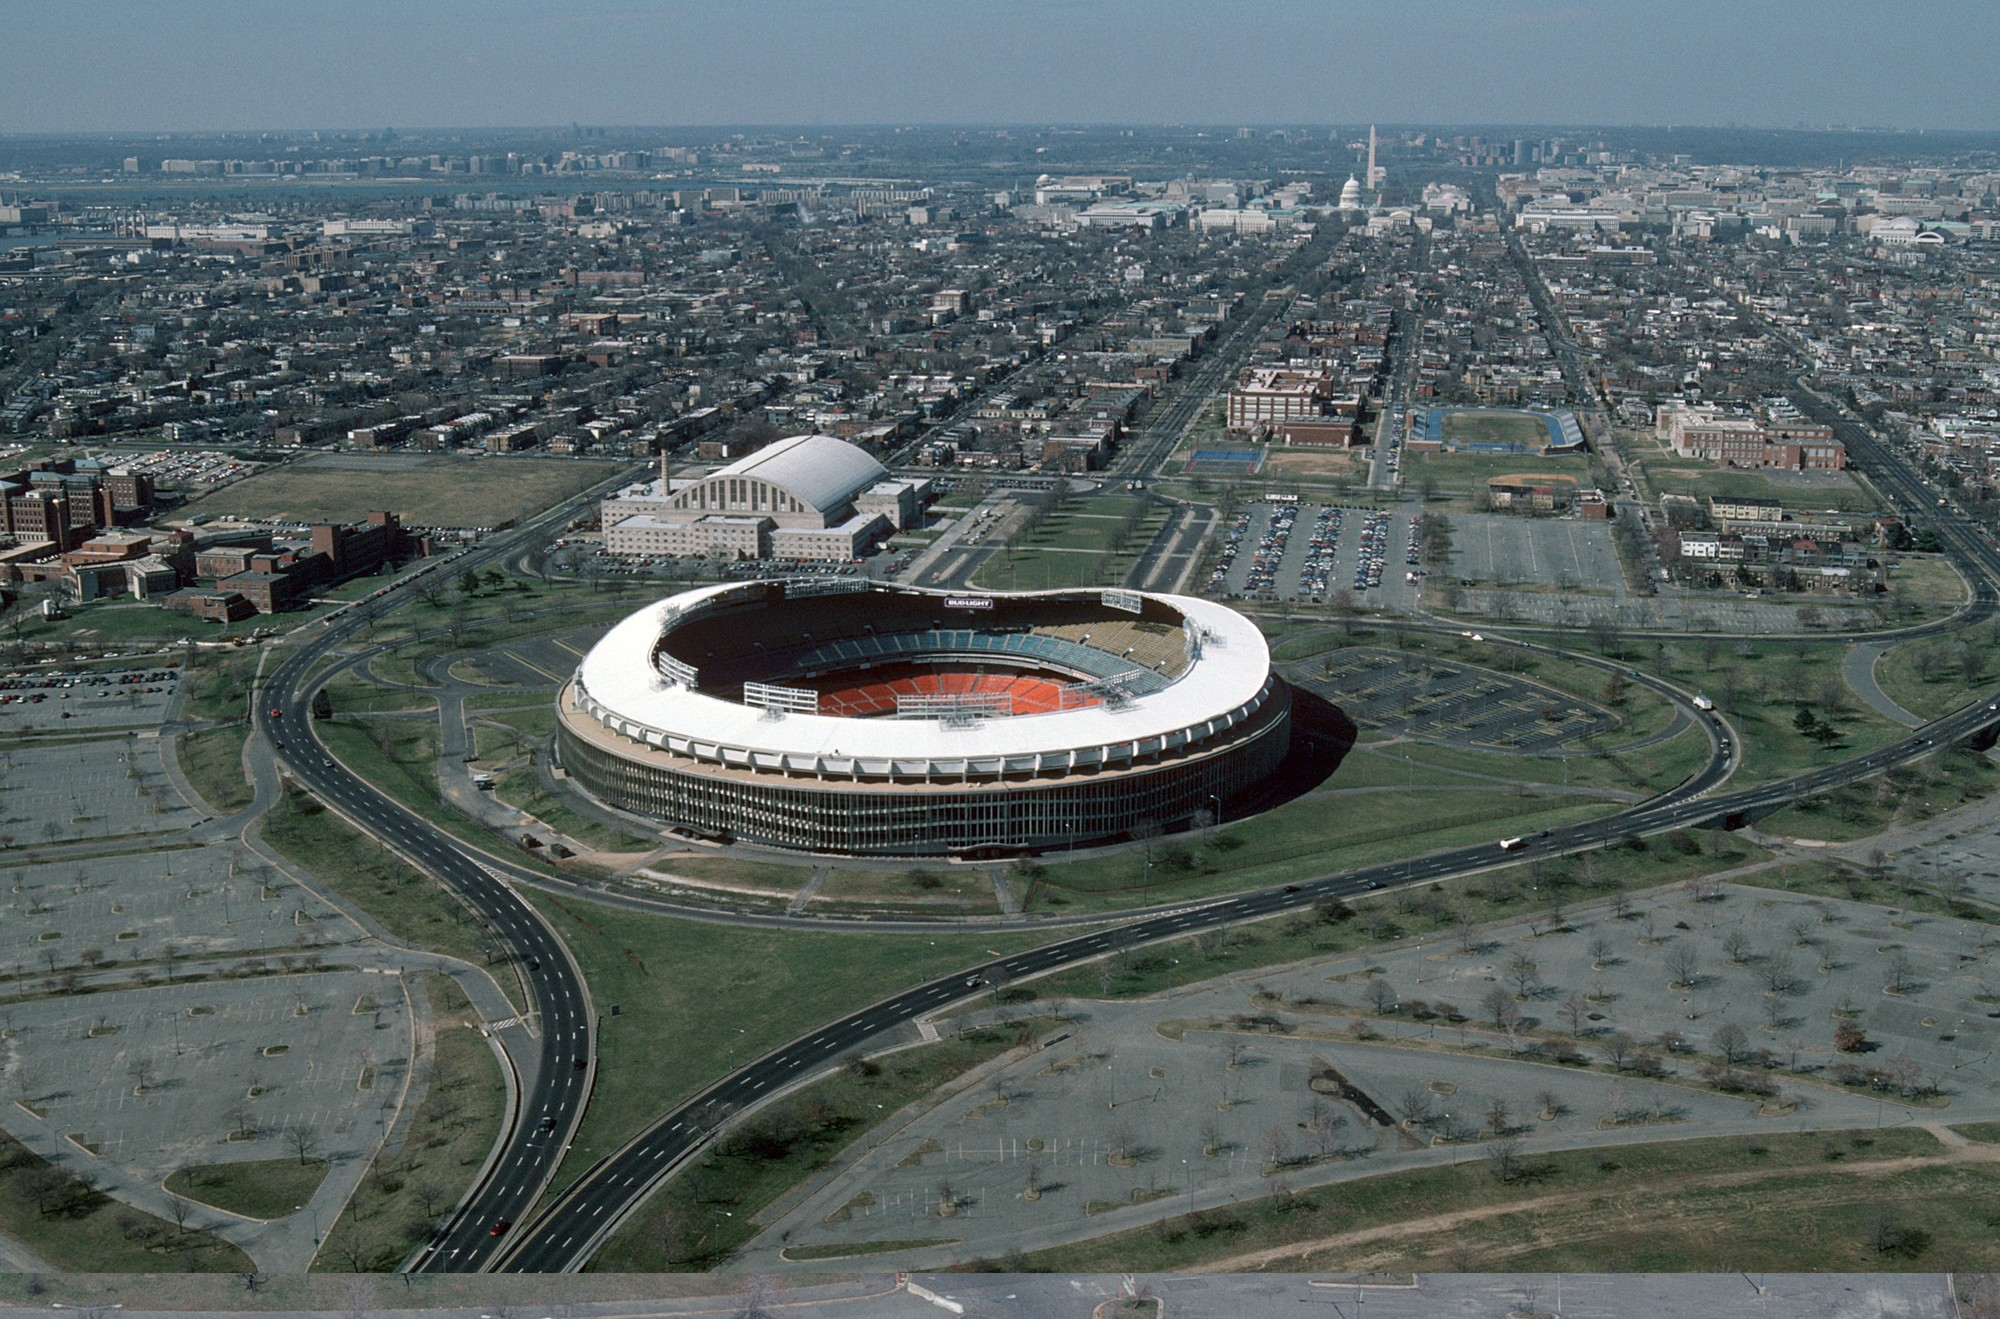 Education stadia and arenas sports and leisure healthcare residential - Oma To Redesign Washington Dc S Rfk Stadium Campus Rfk Stadium In 1988 Image